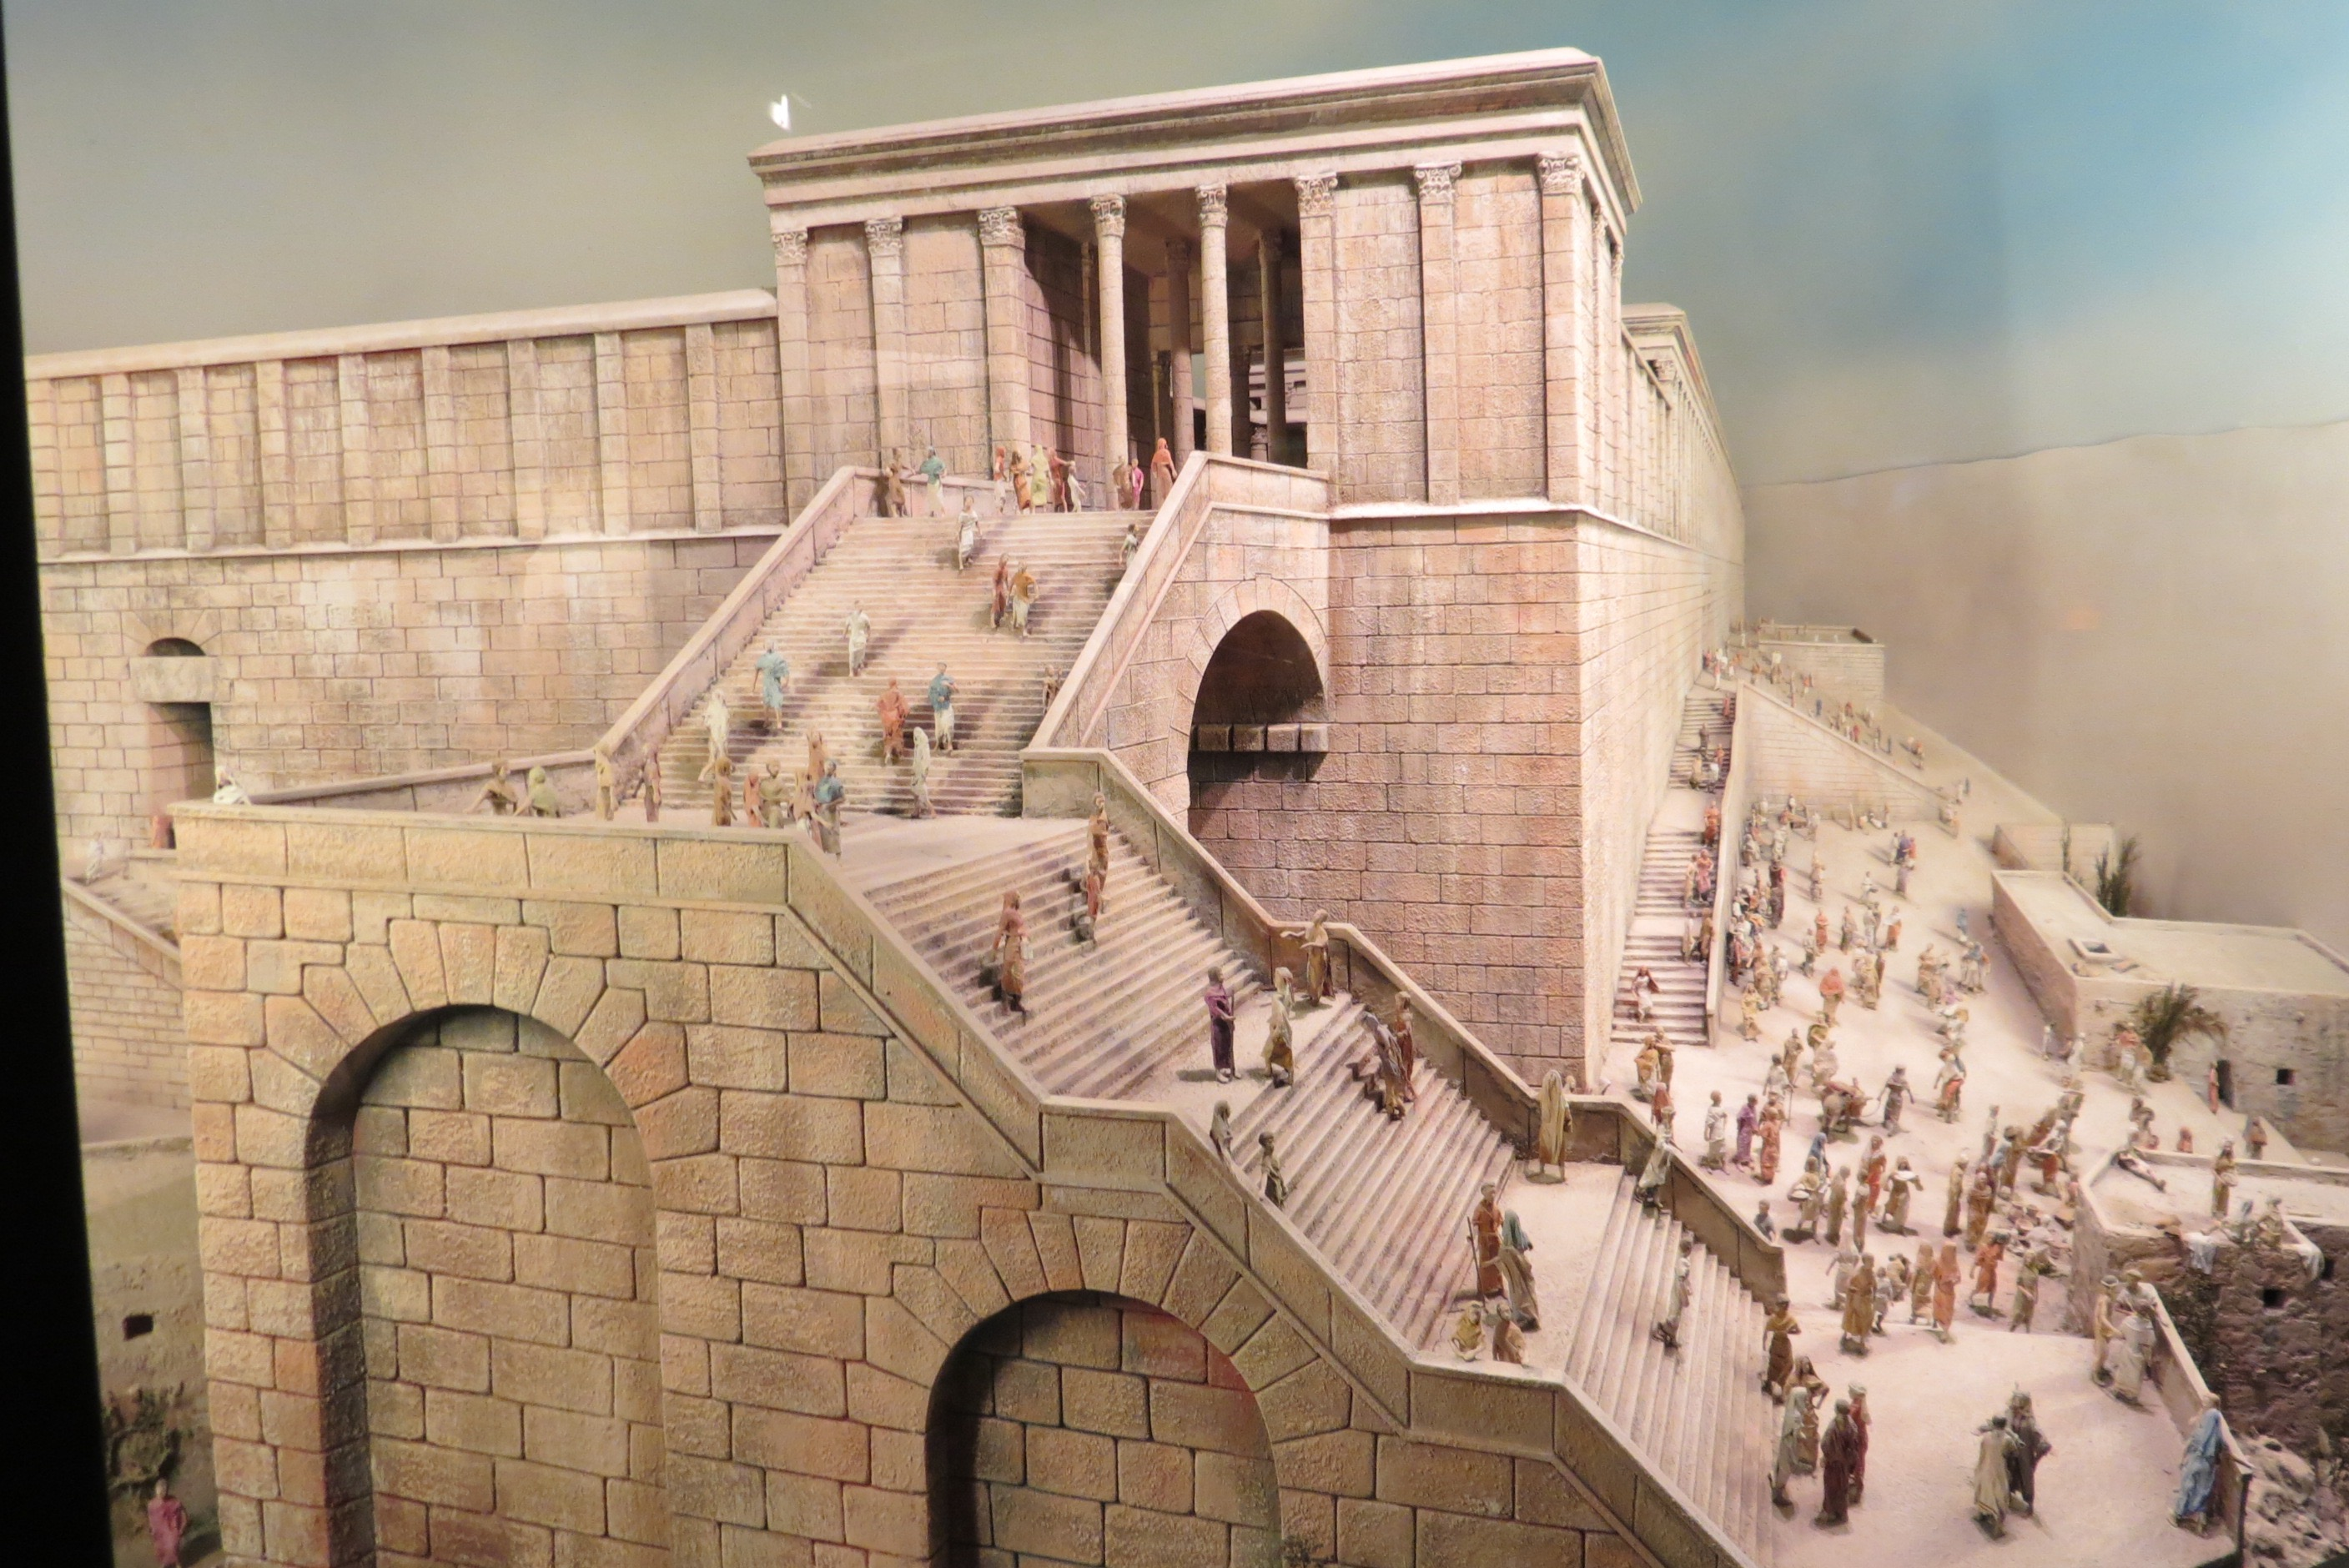 Robinson's Arch - The largest interchange in the ancient world